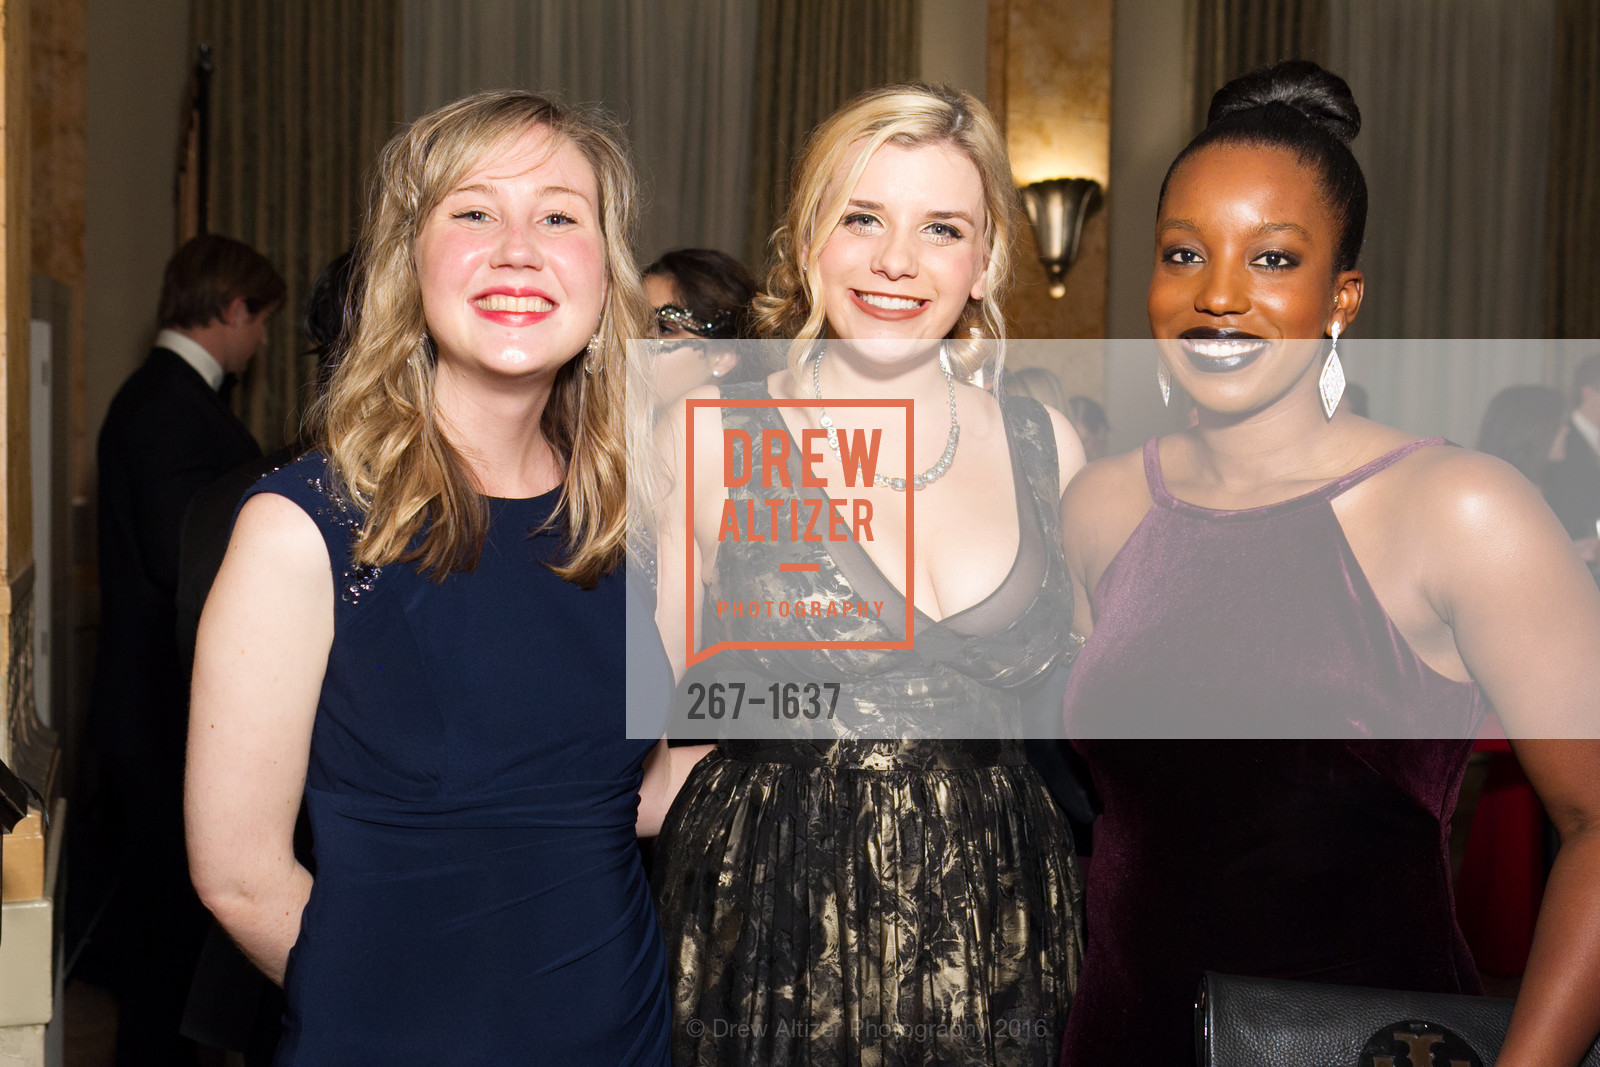 Allison Weeks, Chanel Griffith, Blair Green, Spinsters Holiday event, Metropolitan Club. 640 Sutter St, San Francisco, CA 94102, December 10th, 2016